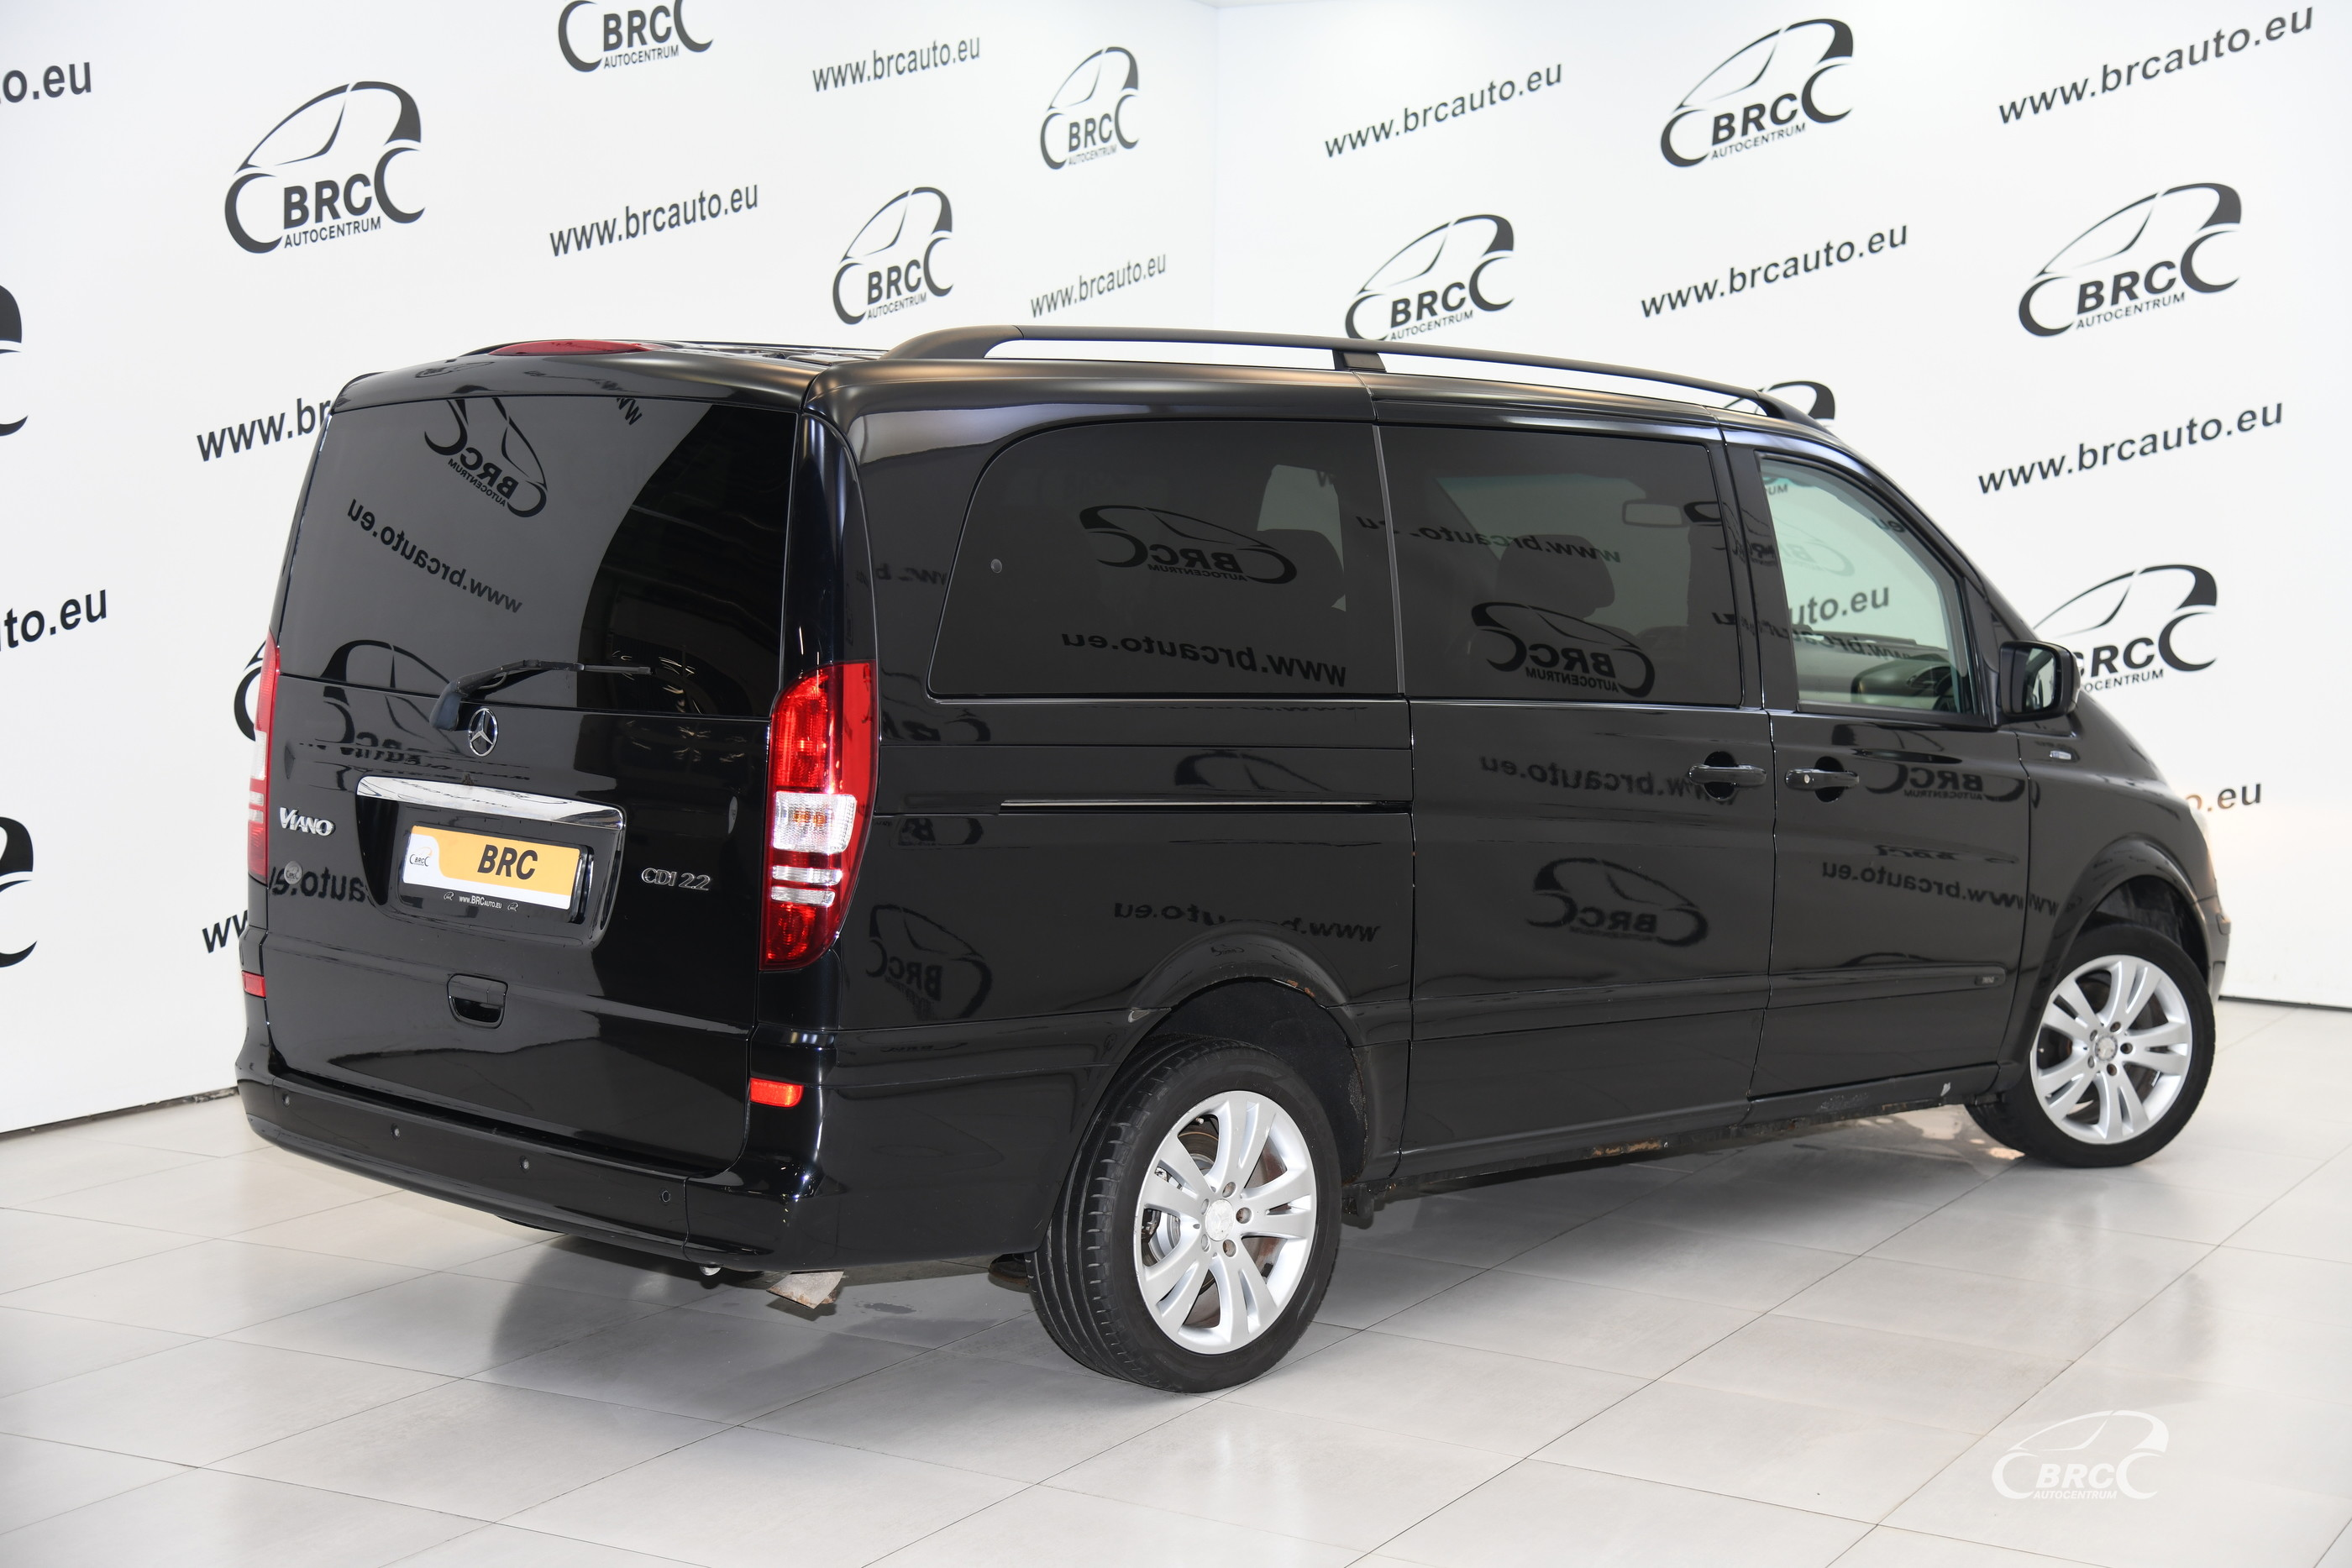 Mercedes-Benz Viano 2.2 CDI BlueEFFICIENCY Automatas